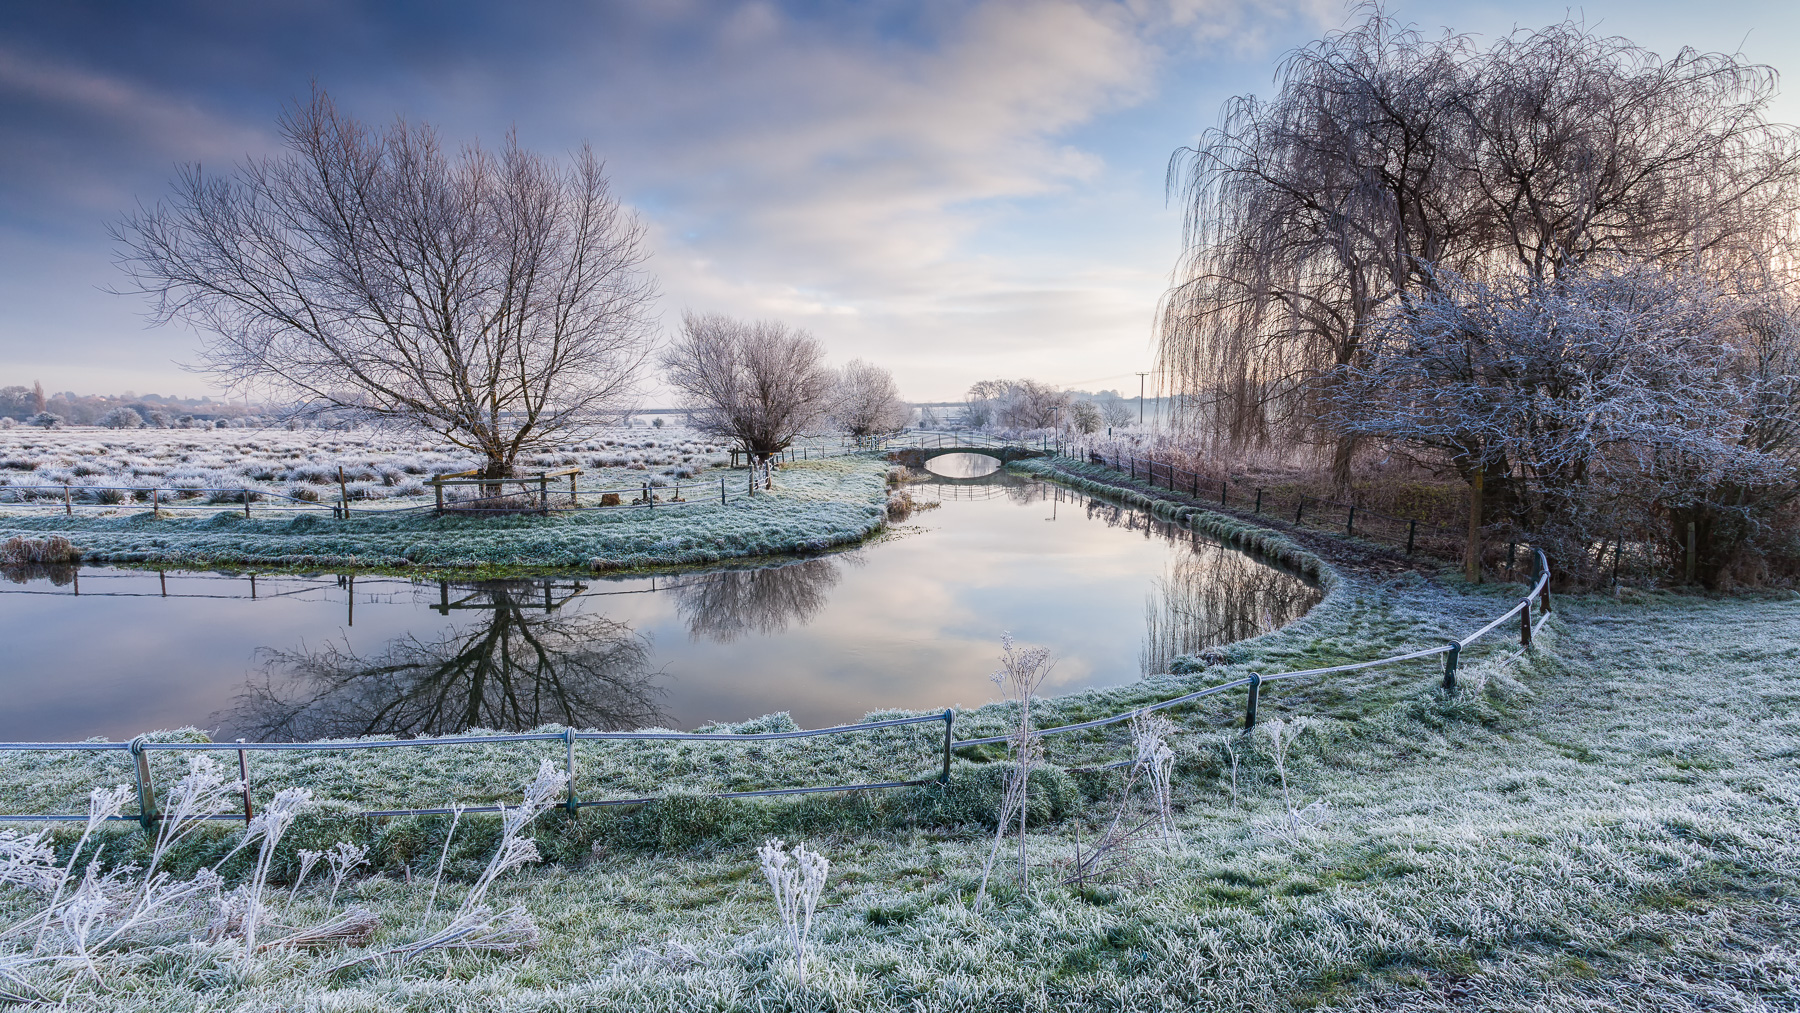 Hertford Marshes, Herts, Canon 5D Mark II, EF17-40mm, ISO100, 17mm, 1/10s at f/14. Tripod. © George Johnson